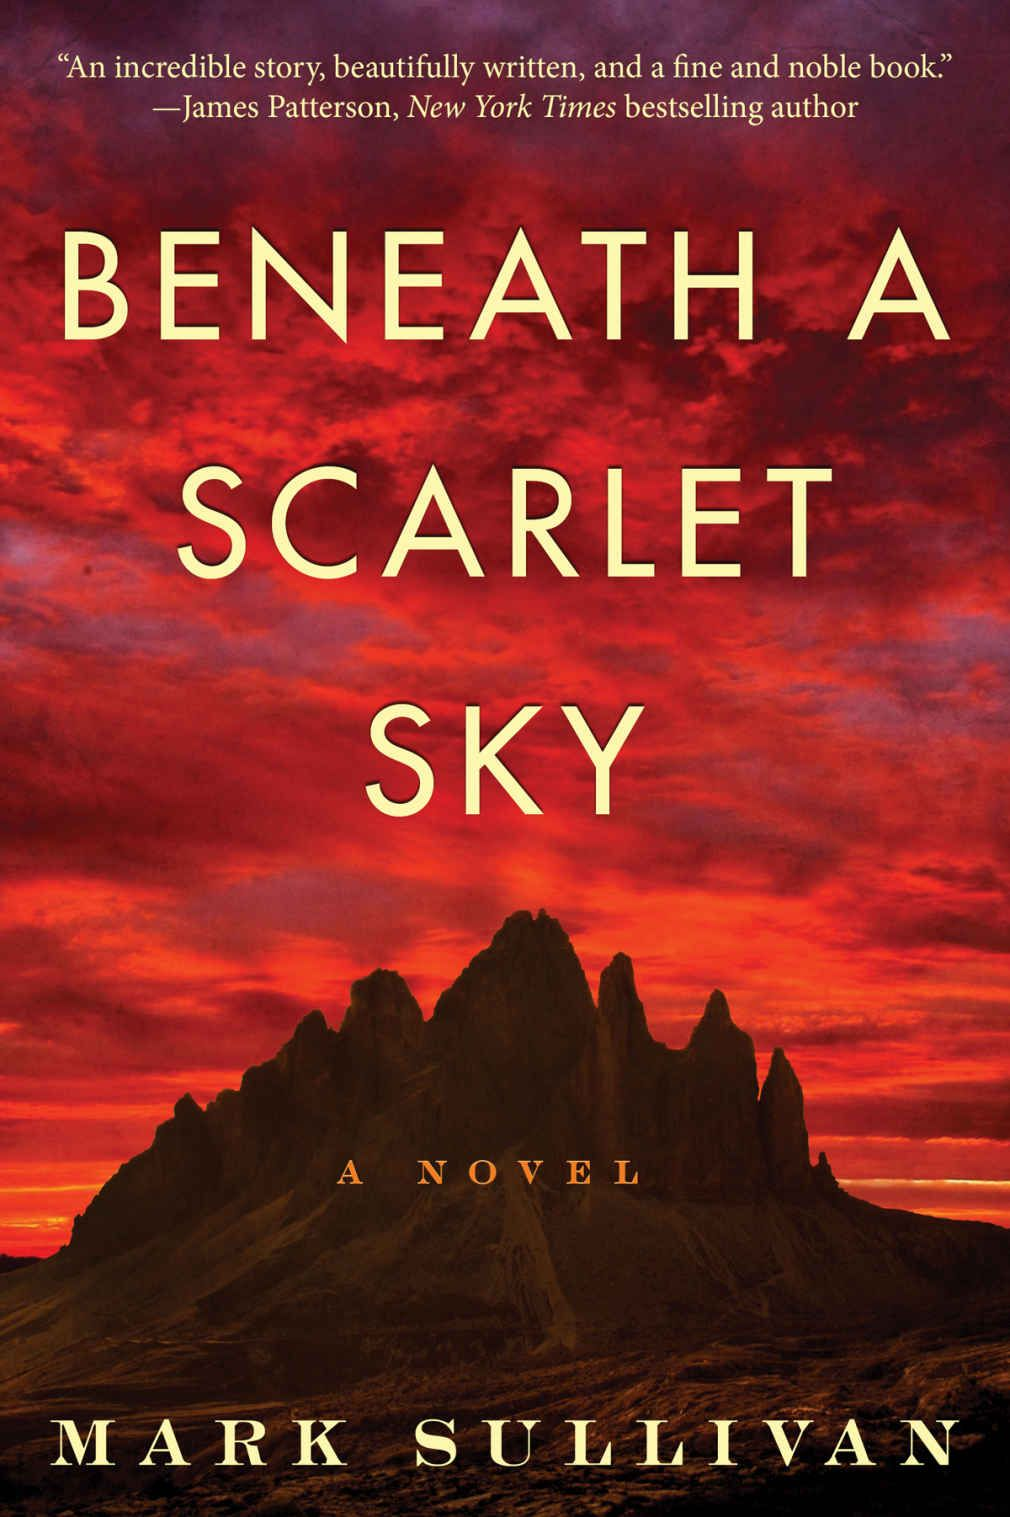 download pdf beneath a scarlet sky by mark t sullivan free